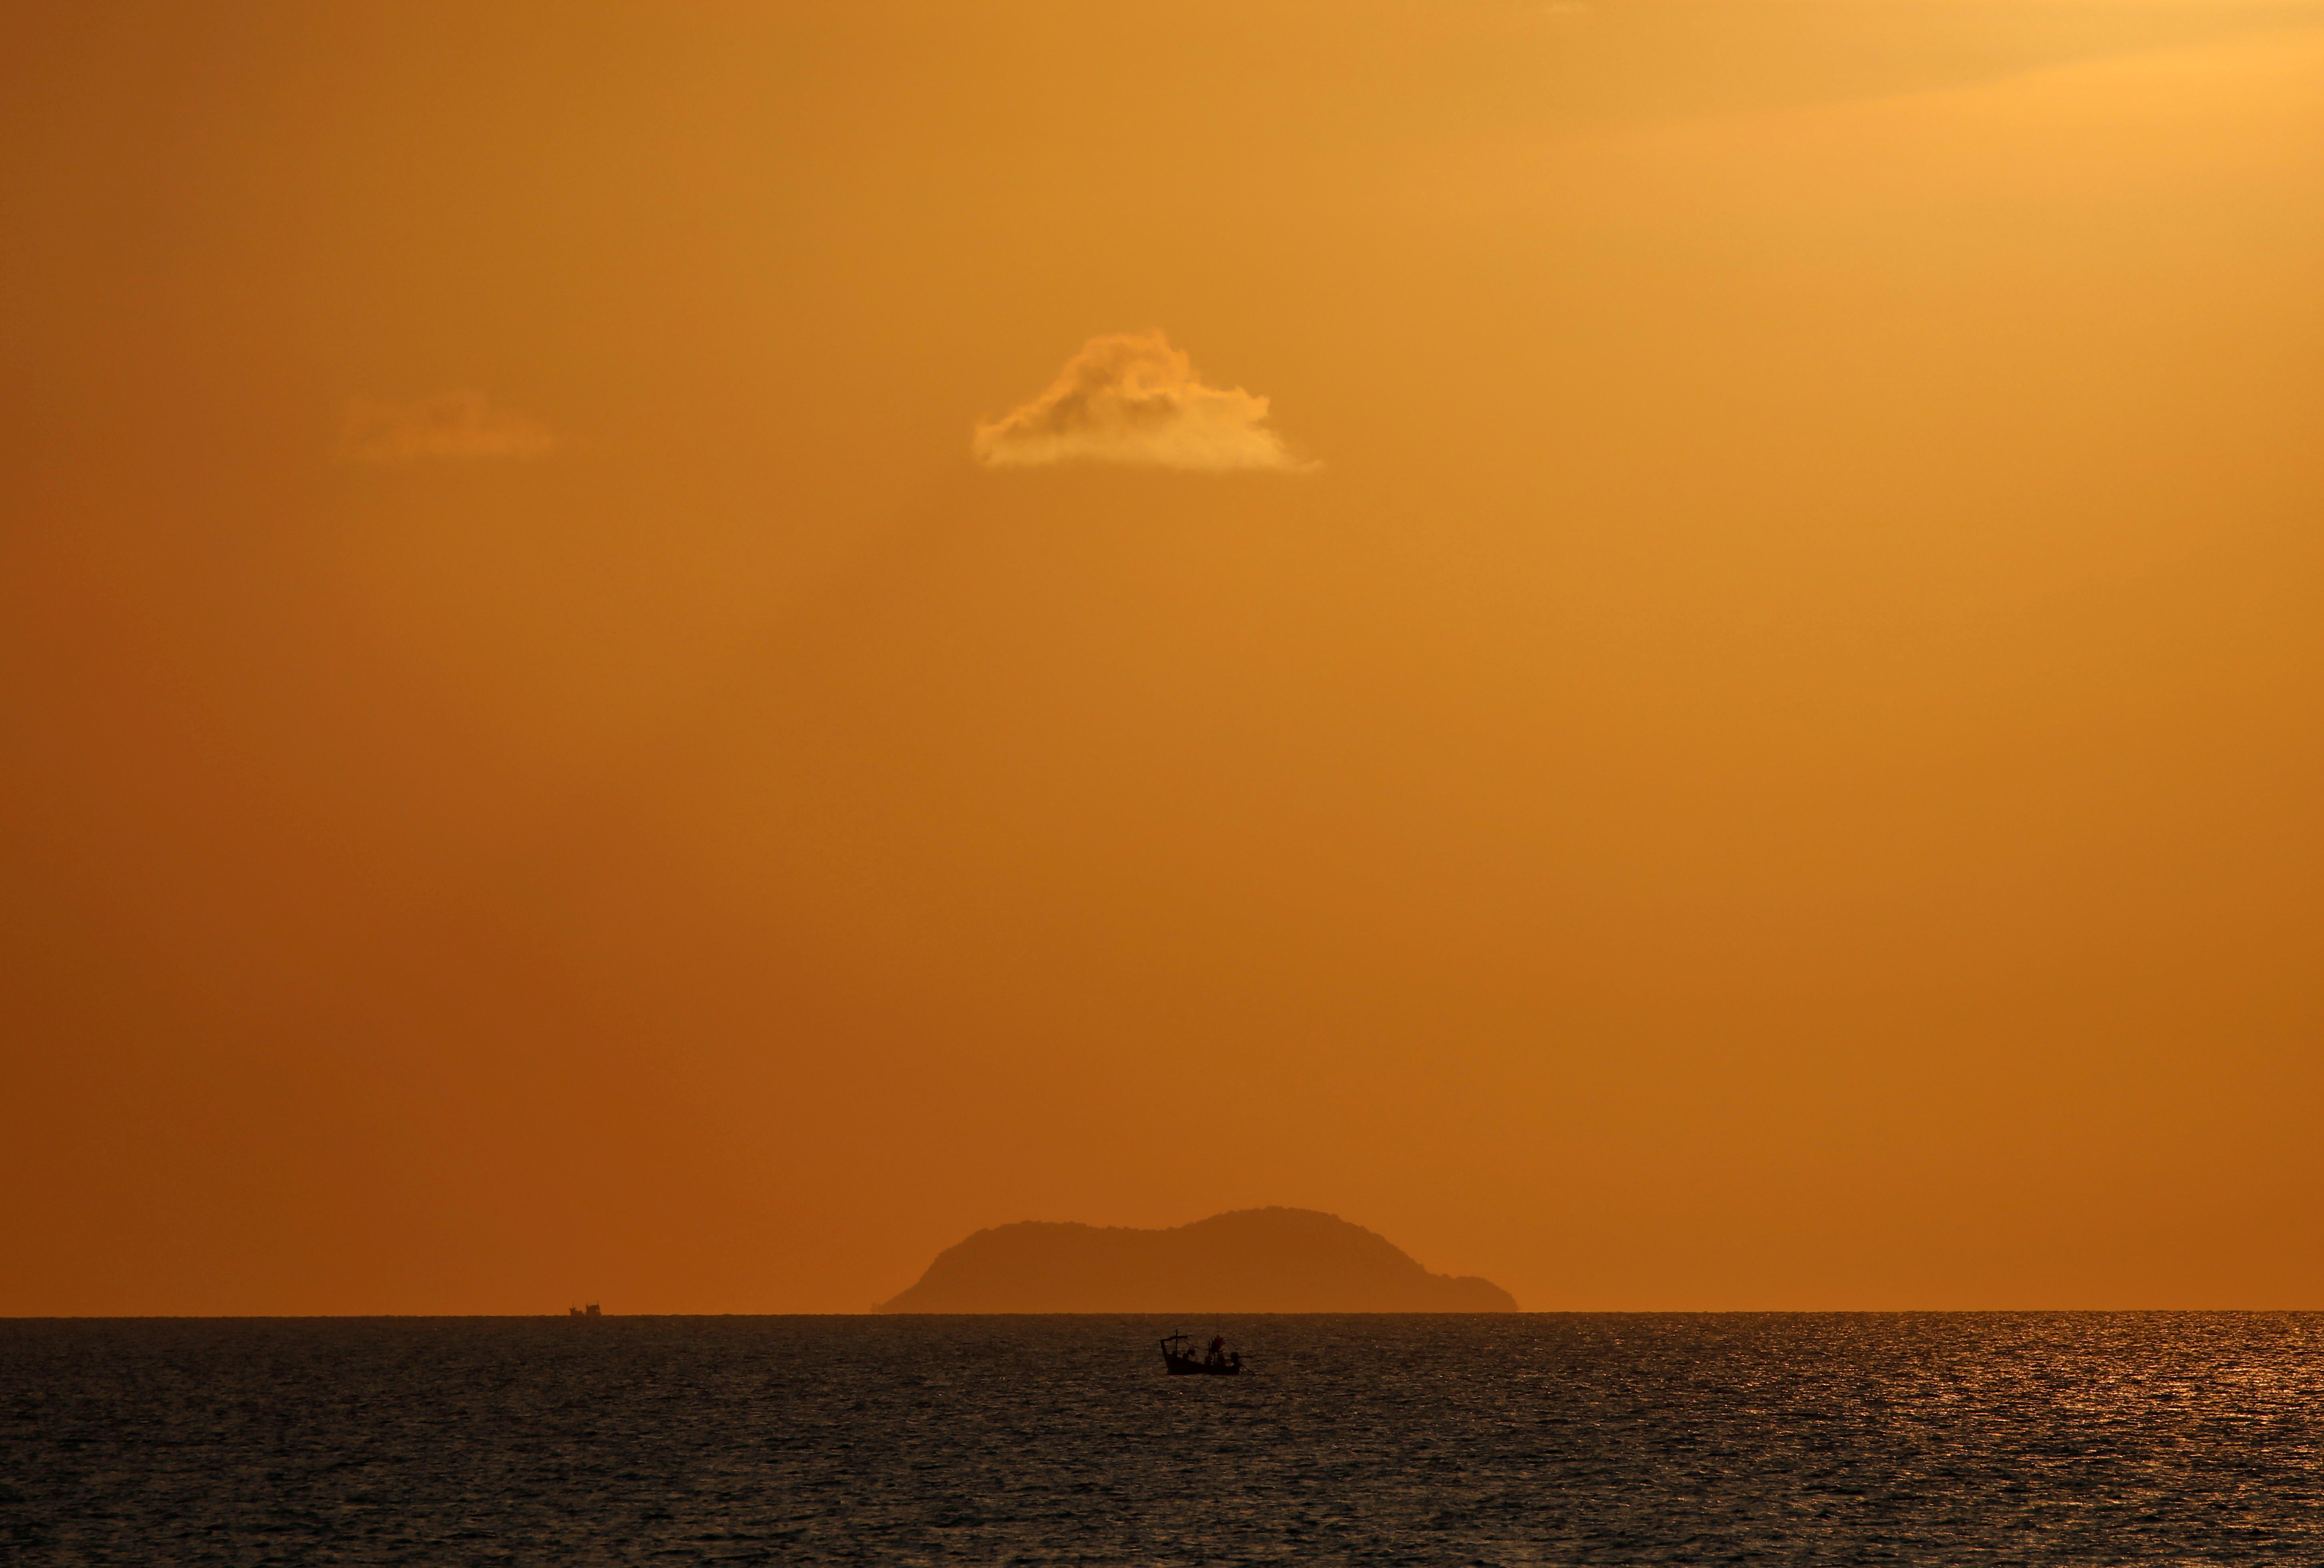 A boat sails on the Gulf of Thailand during the sunset at Ko Samui in Thailand March 3, 2020. REUTERS/Navesh Chitrakar/File Photo